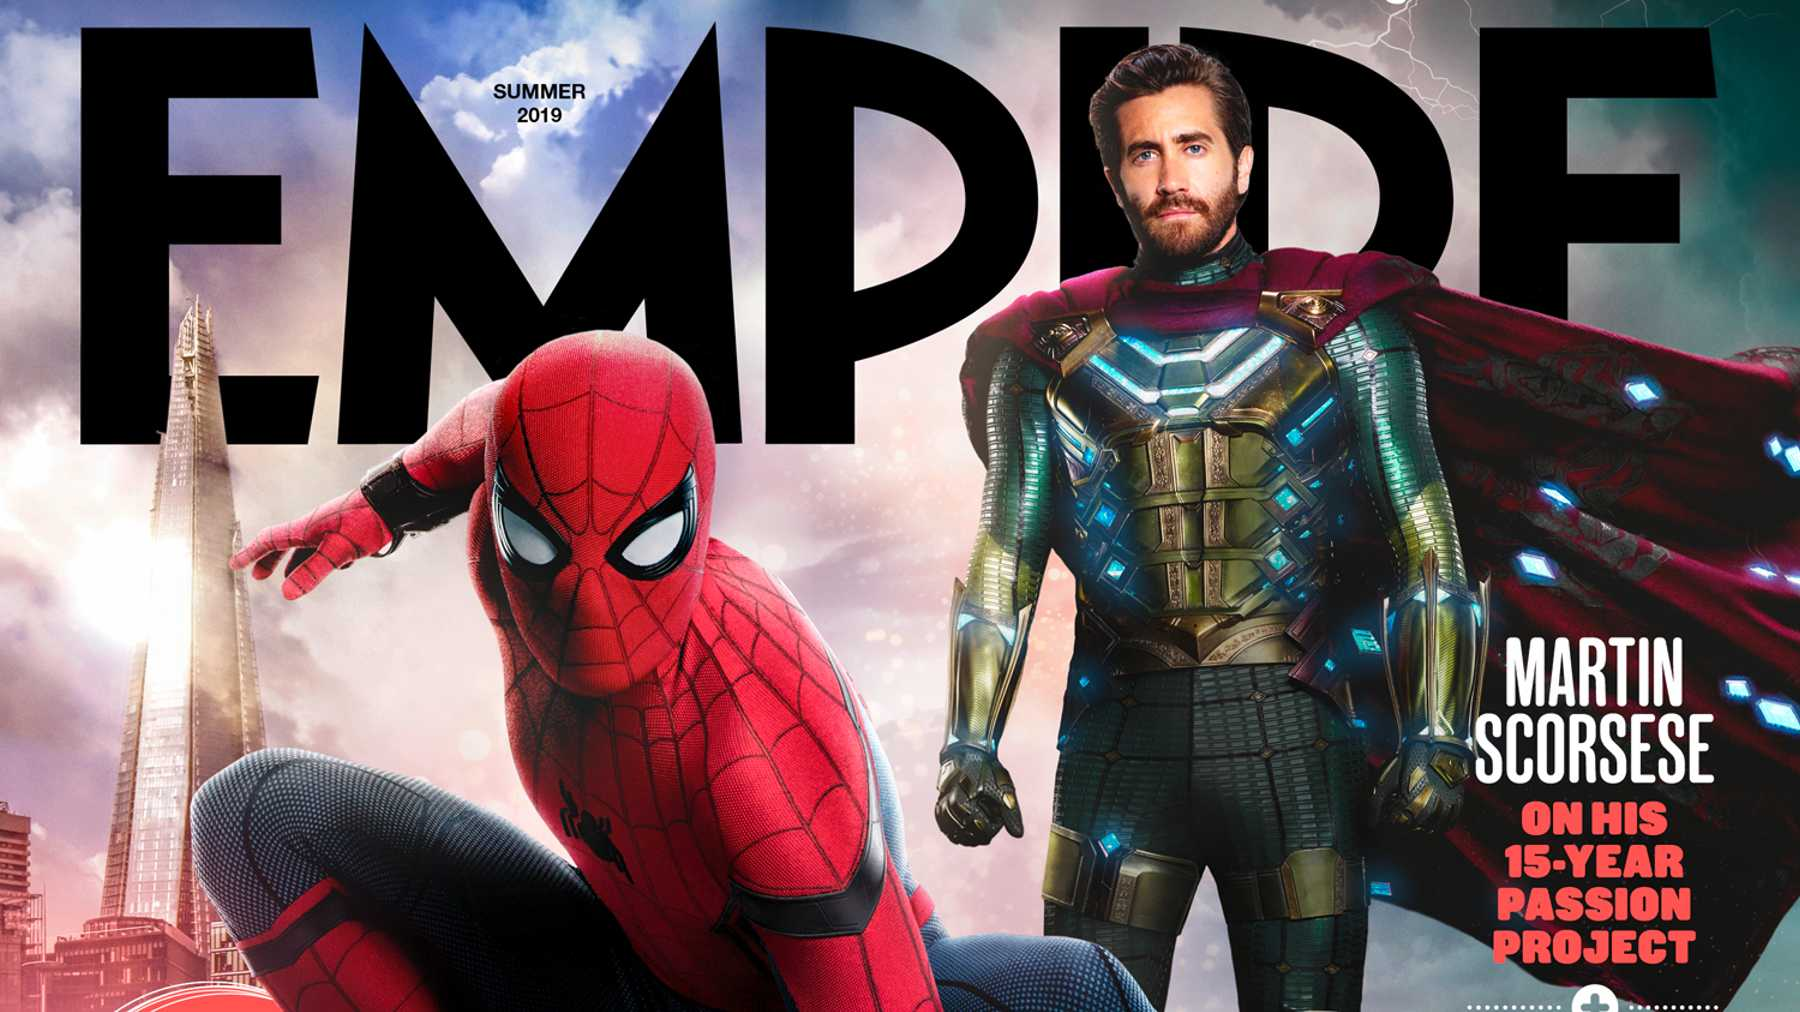 Empire's Spider-Man: Far From Home Newsstand Cover Revealed